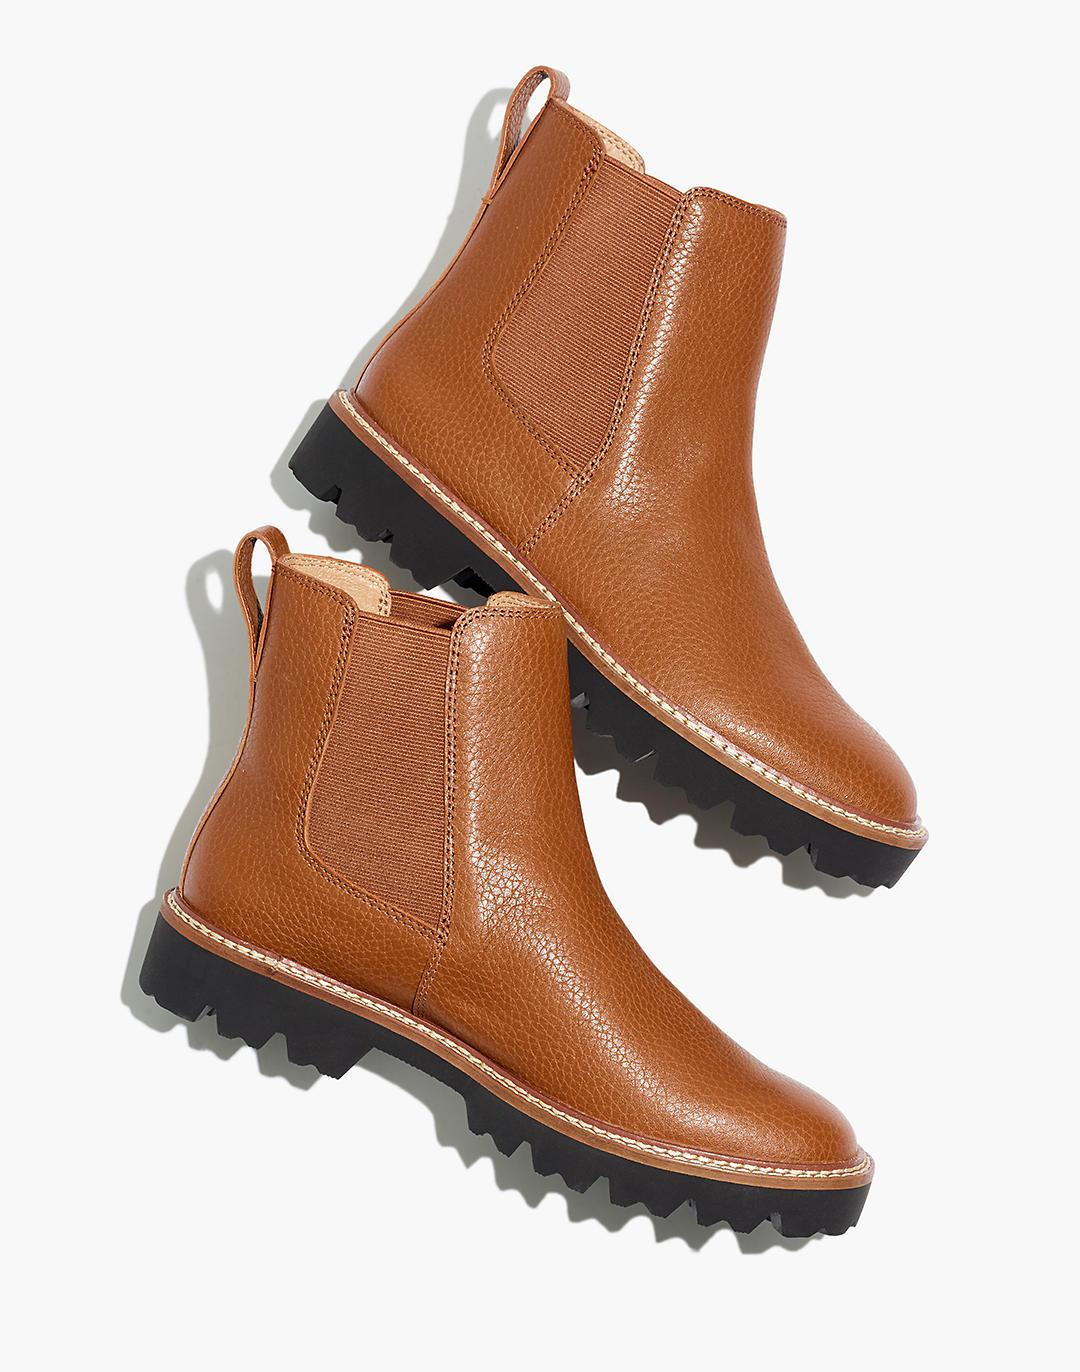 The Citywalk Lugsole Chelsea Boot in Leather